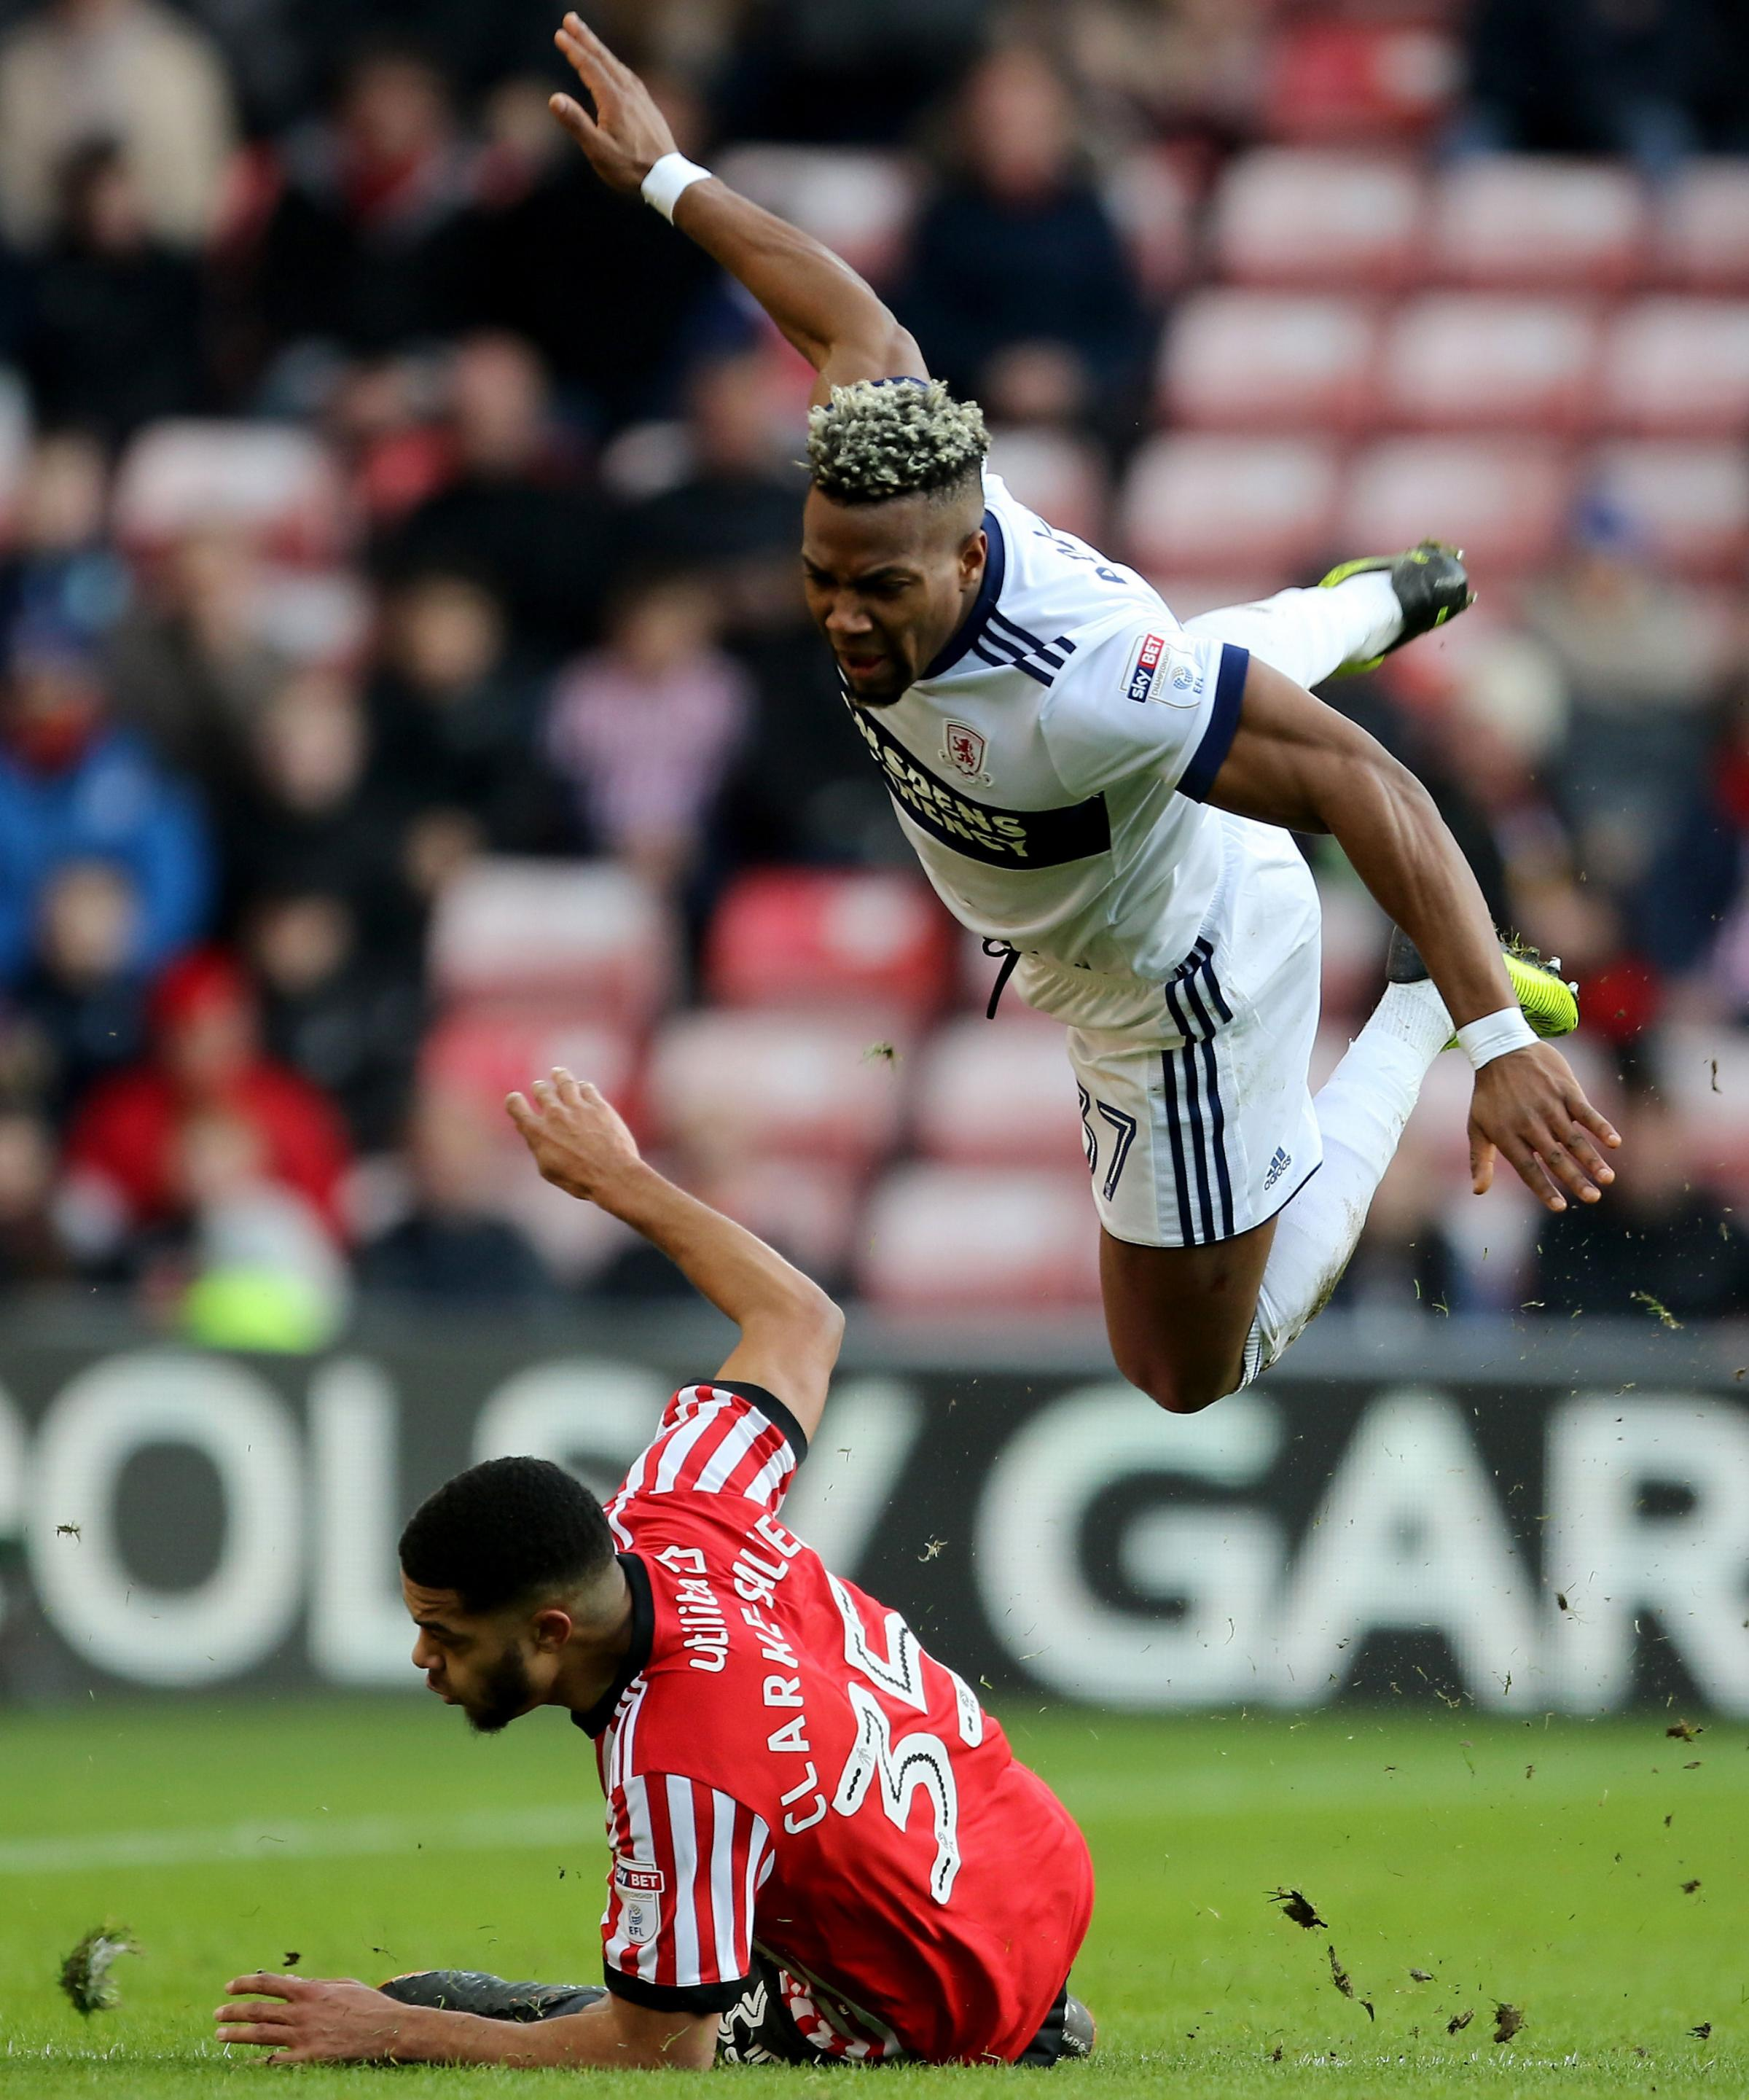 Flying: Sunderland's Jake Clarke-Salter tackles Middlesbrough's Adama Traore. Picture: PA